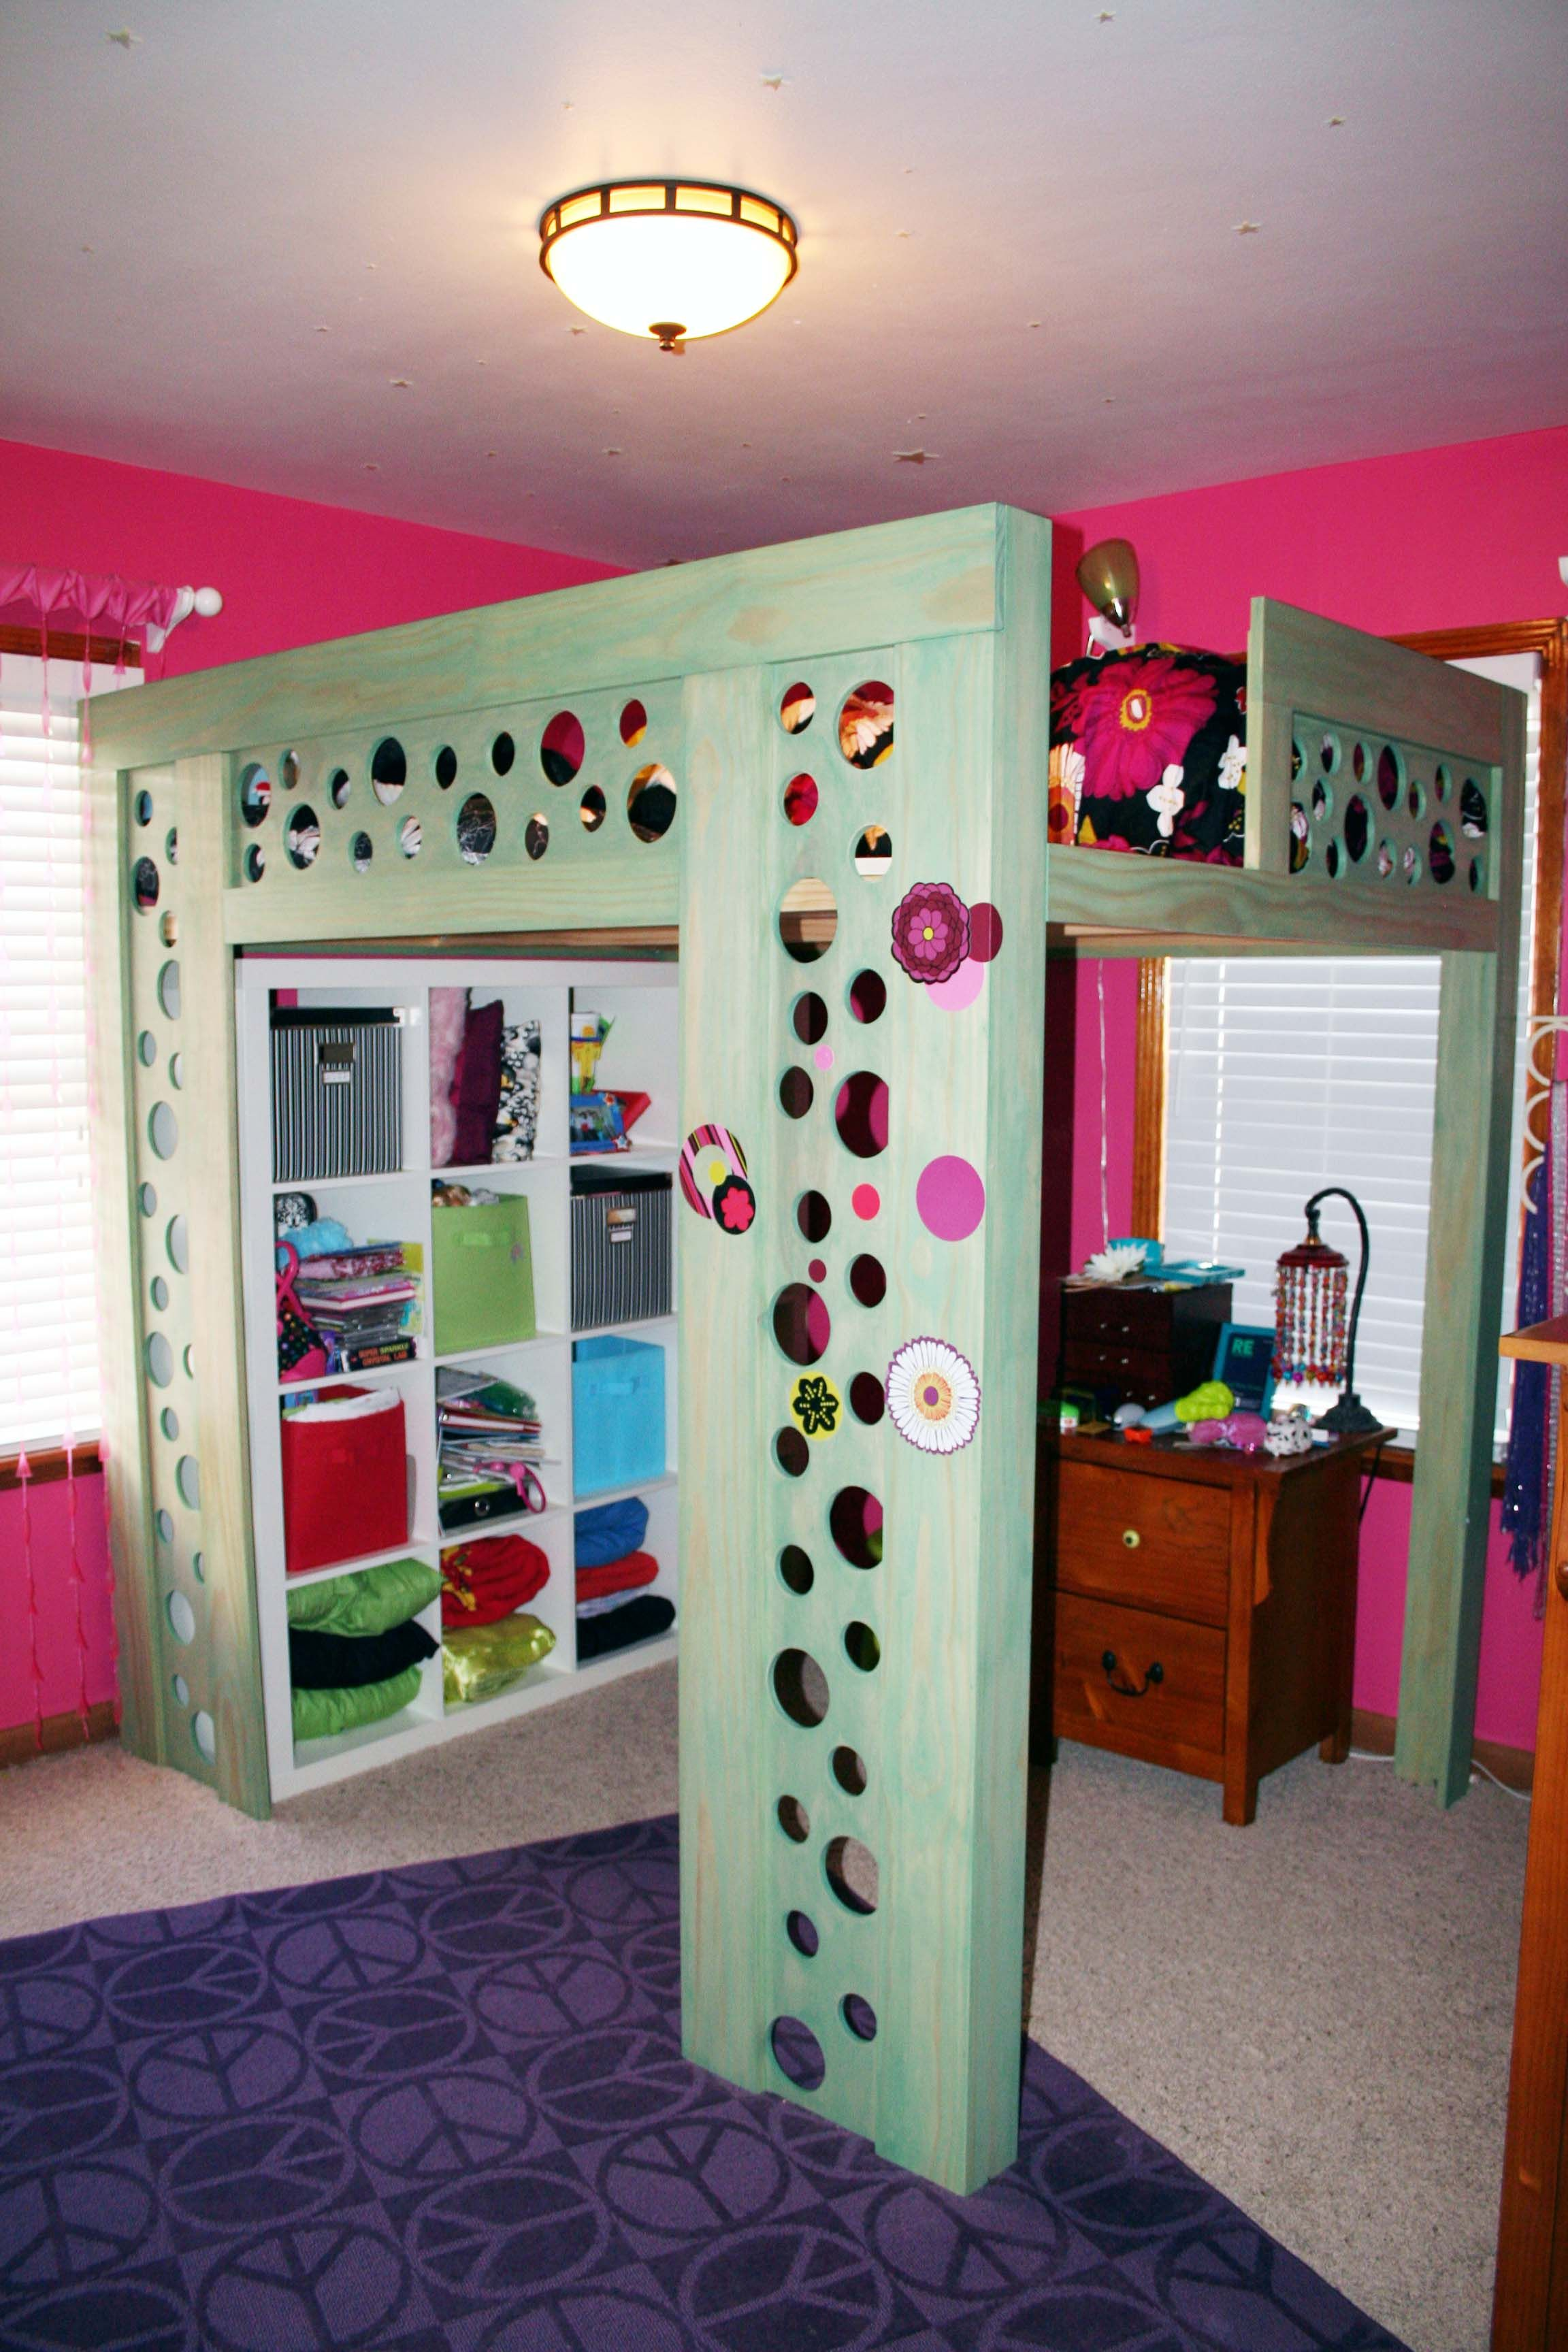 Coolest Loft Bed EVER!!! IKEA Storage underneath is awesome to keep room  nicely